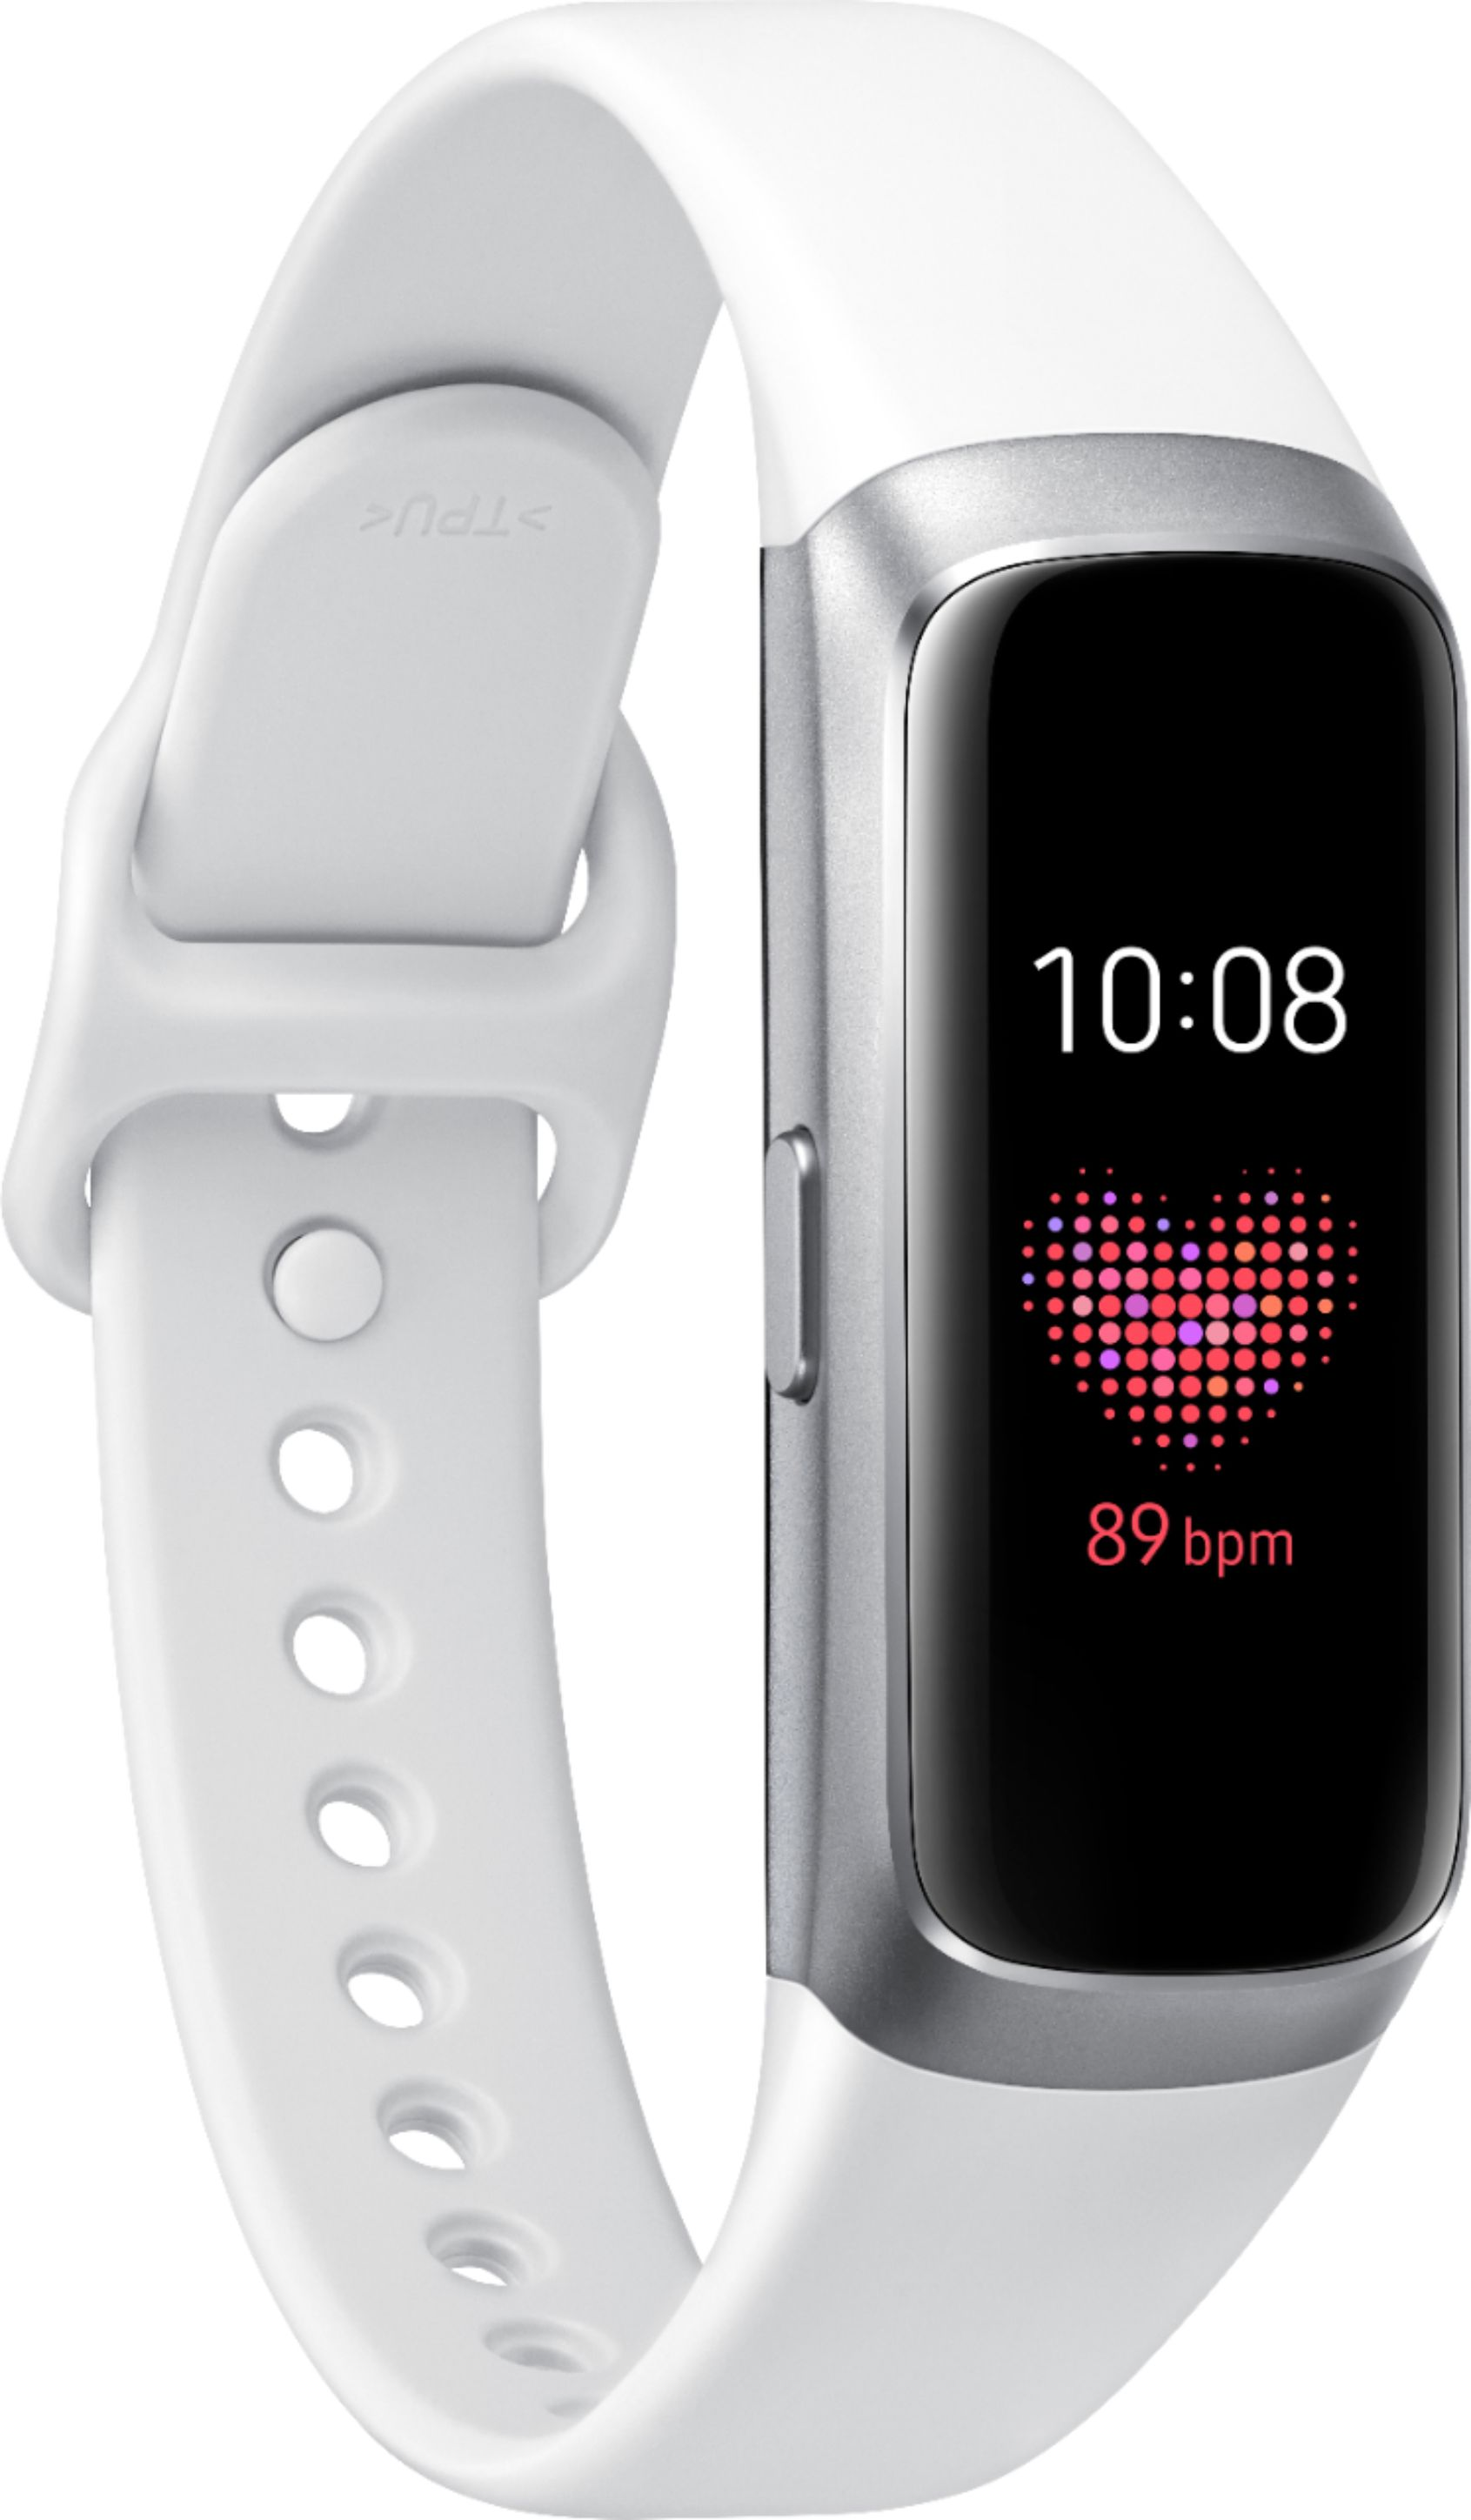 Samsung - Galaxy Fit Activity Tracker + Heart Rate - White